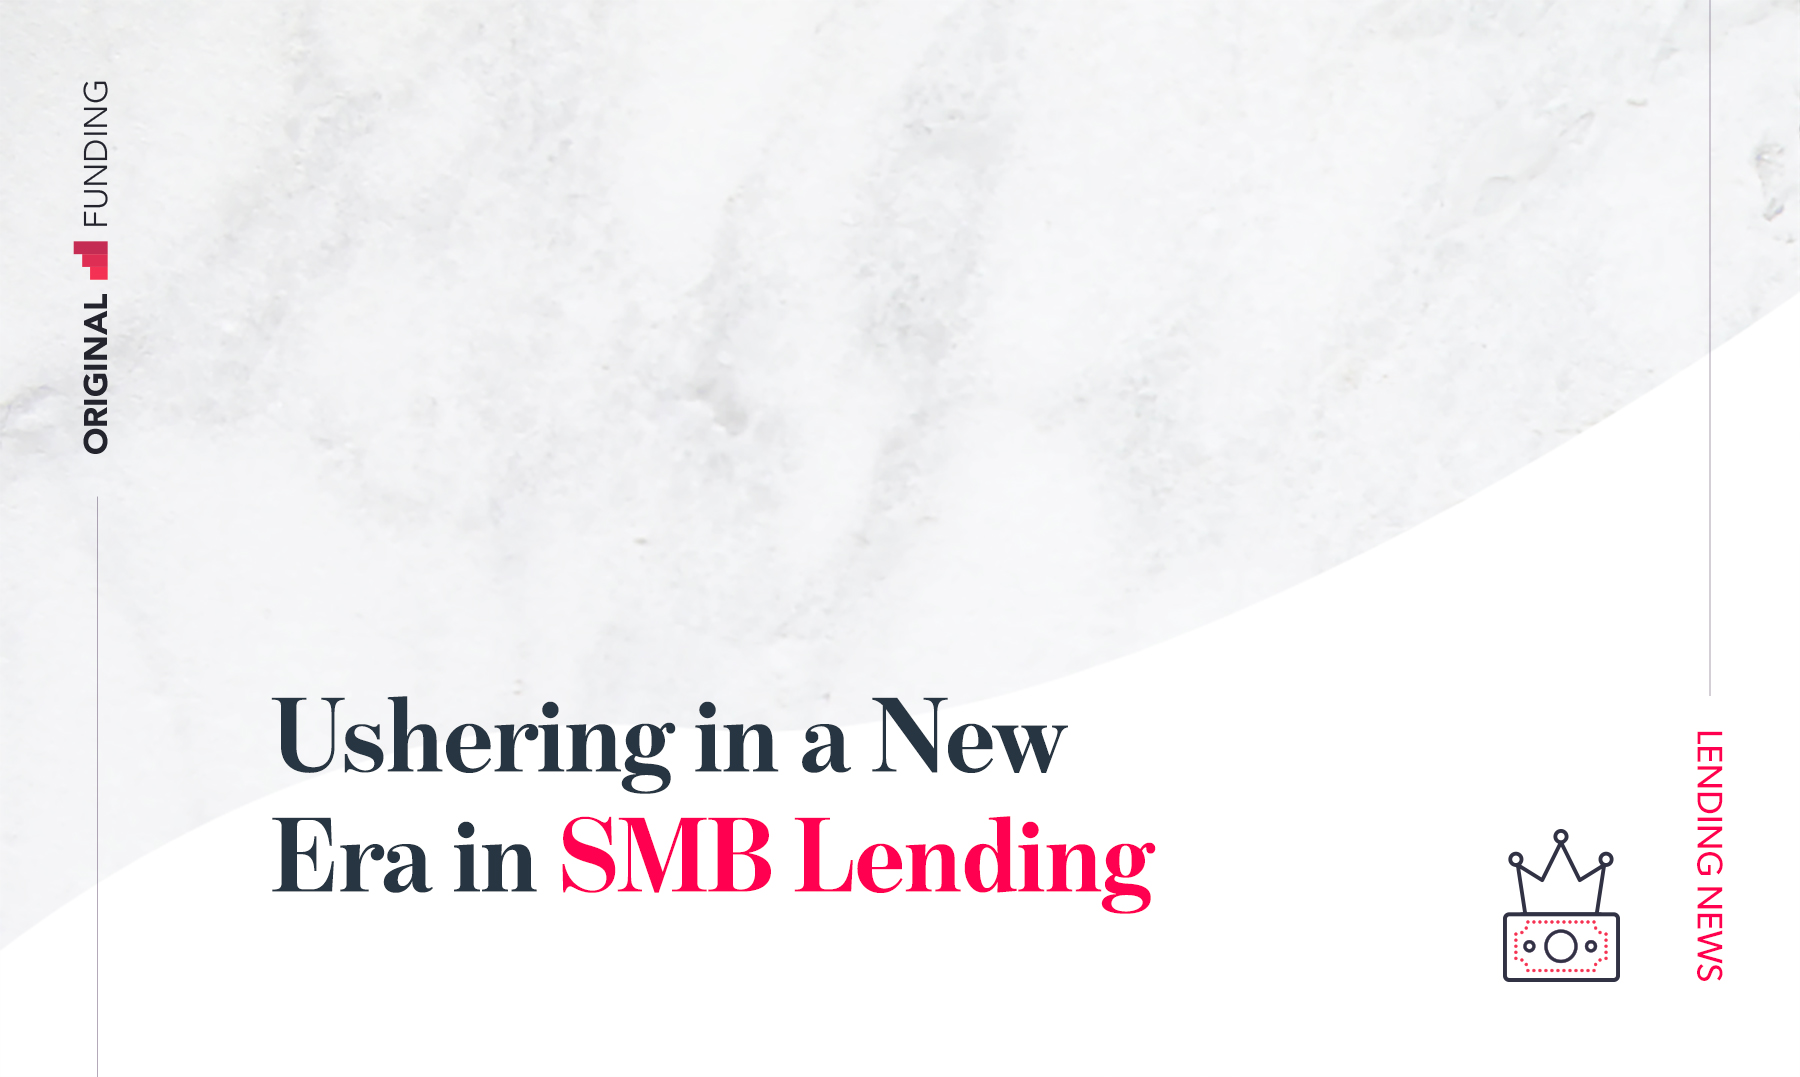 Ushering in a New Era in SMB Lending